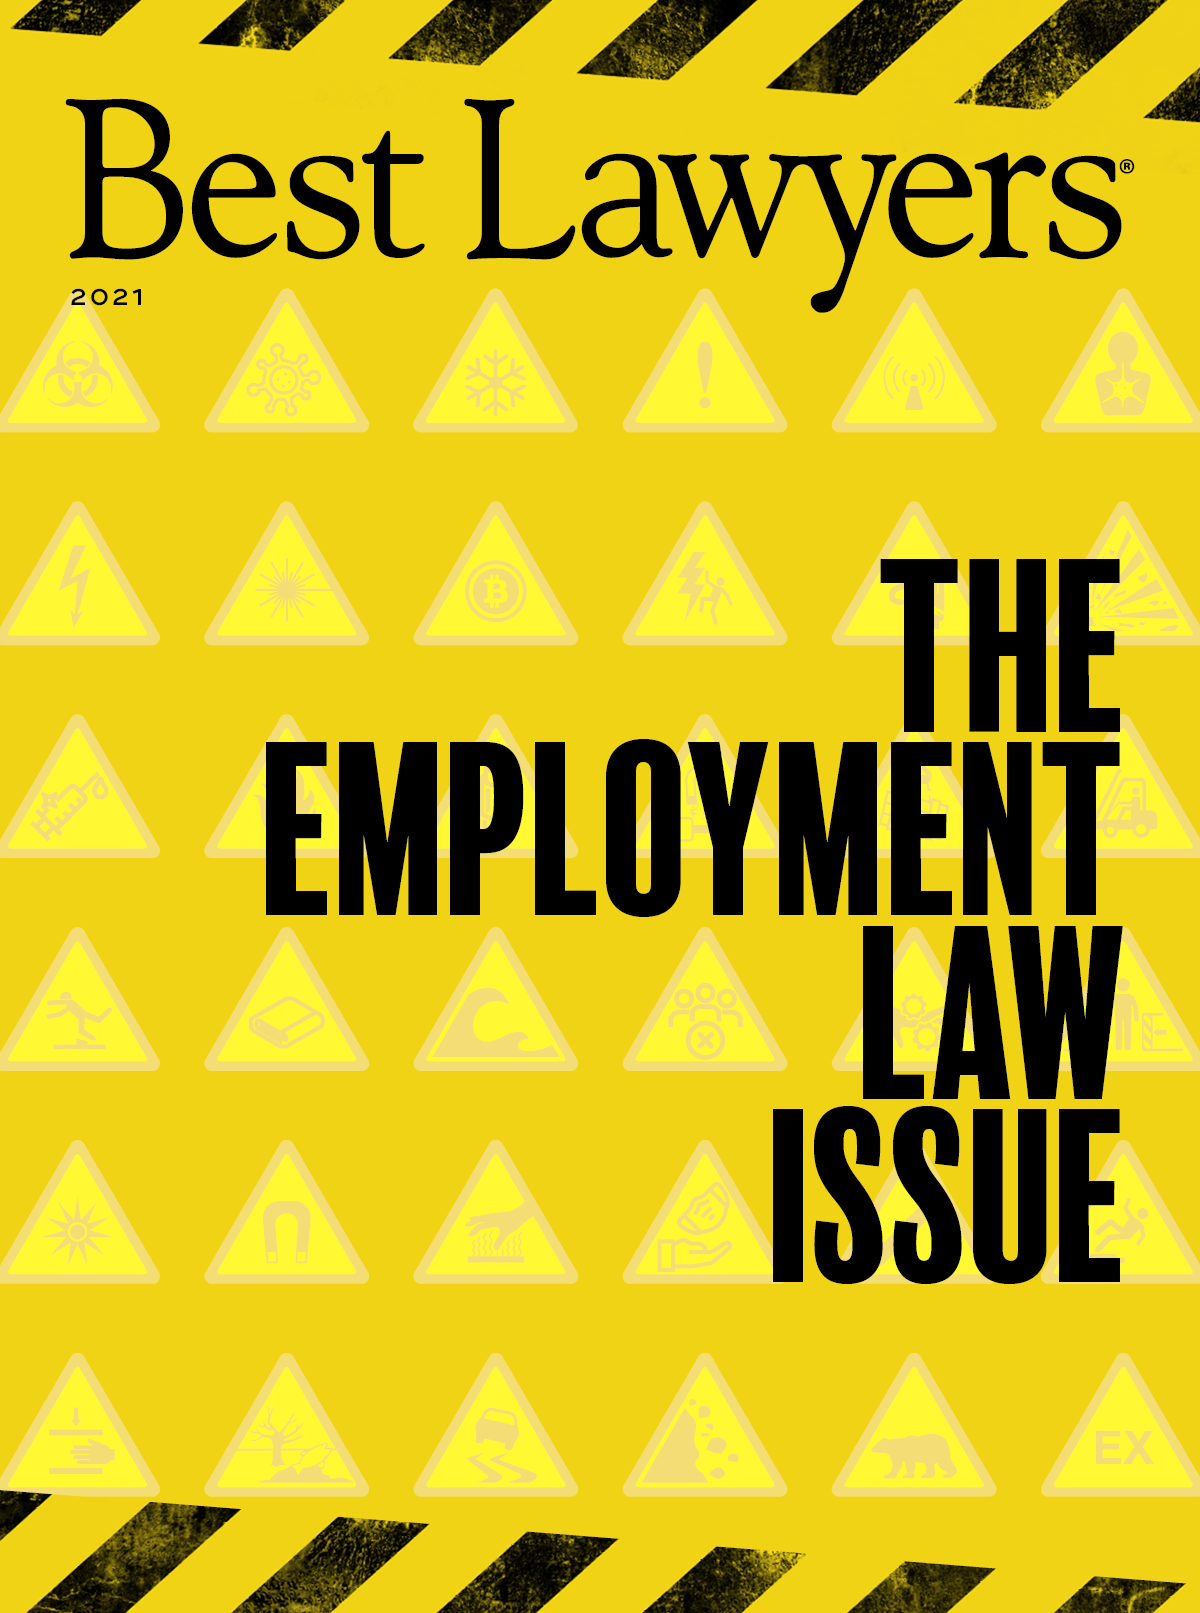 The Best Lawyers Employment Law Issue